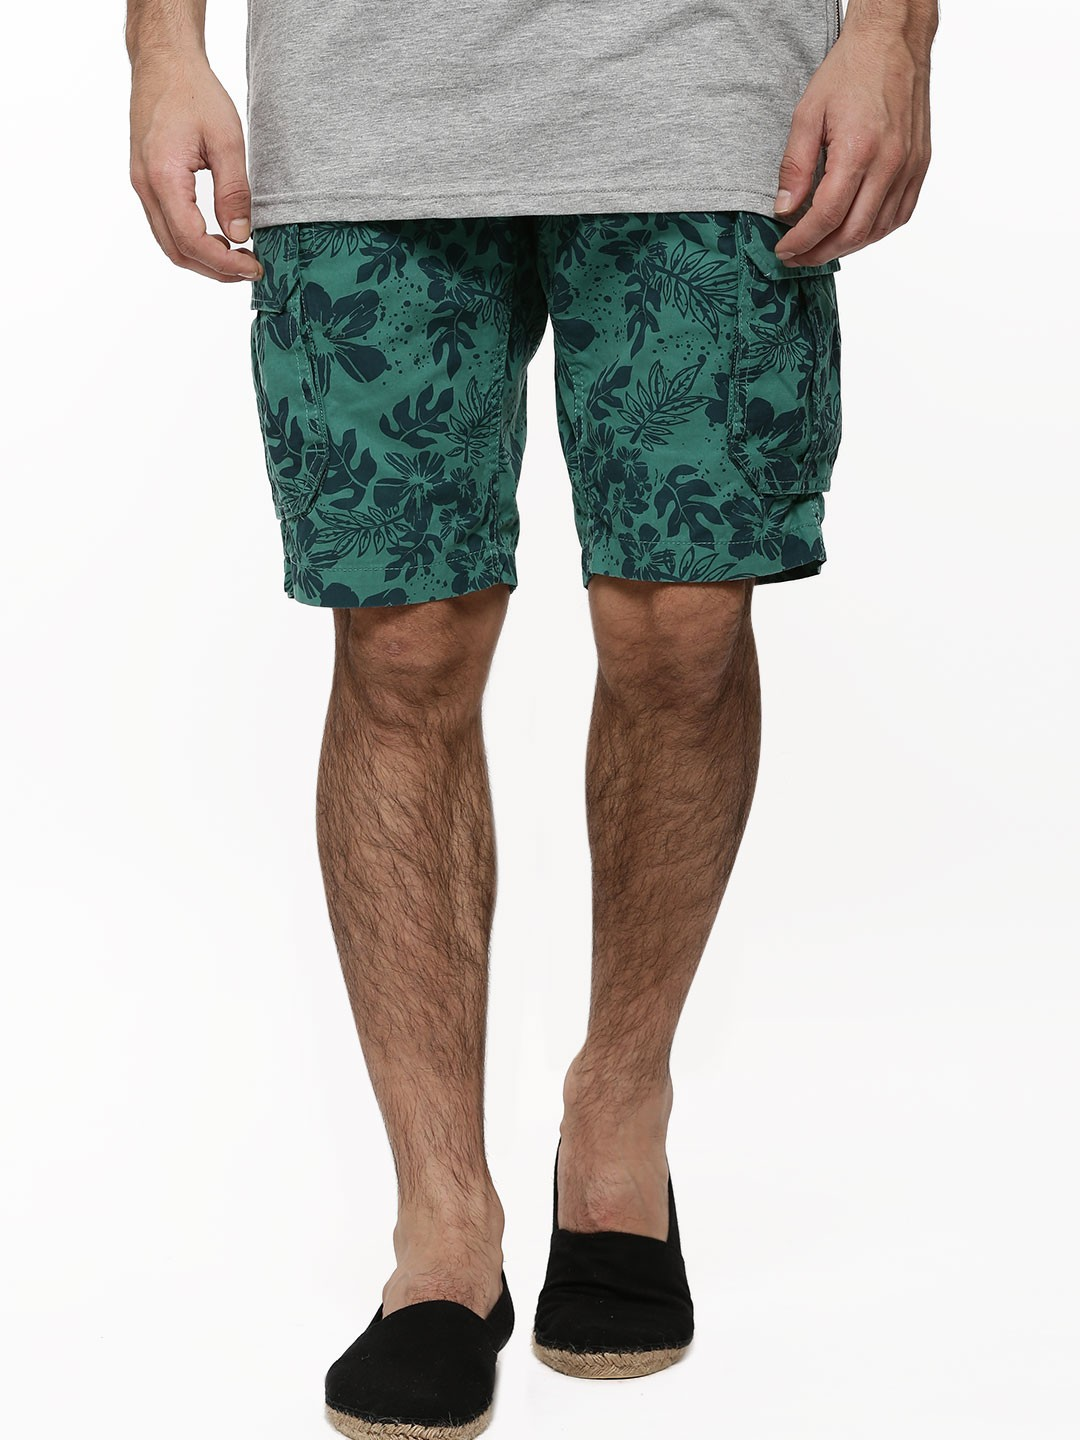 Buy FLYING MACHINE All Over Floral Print Shorts For Men - Men's ...